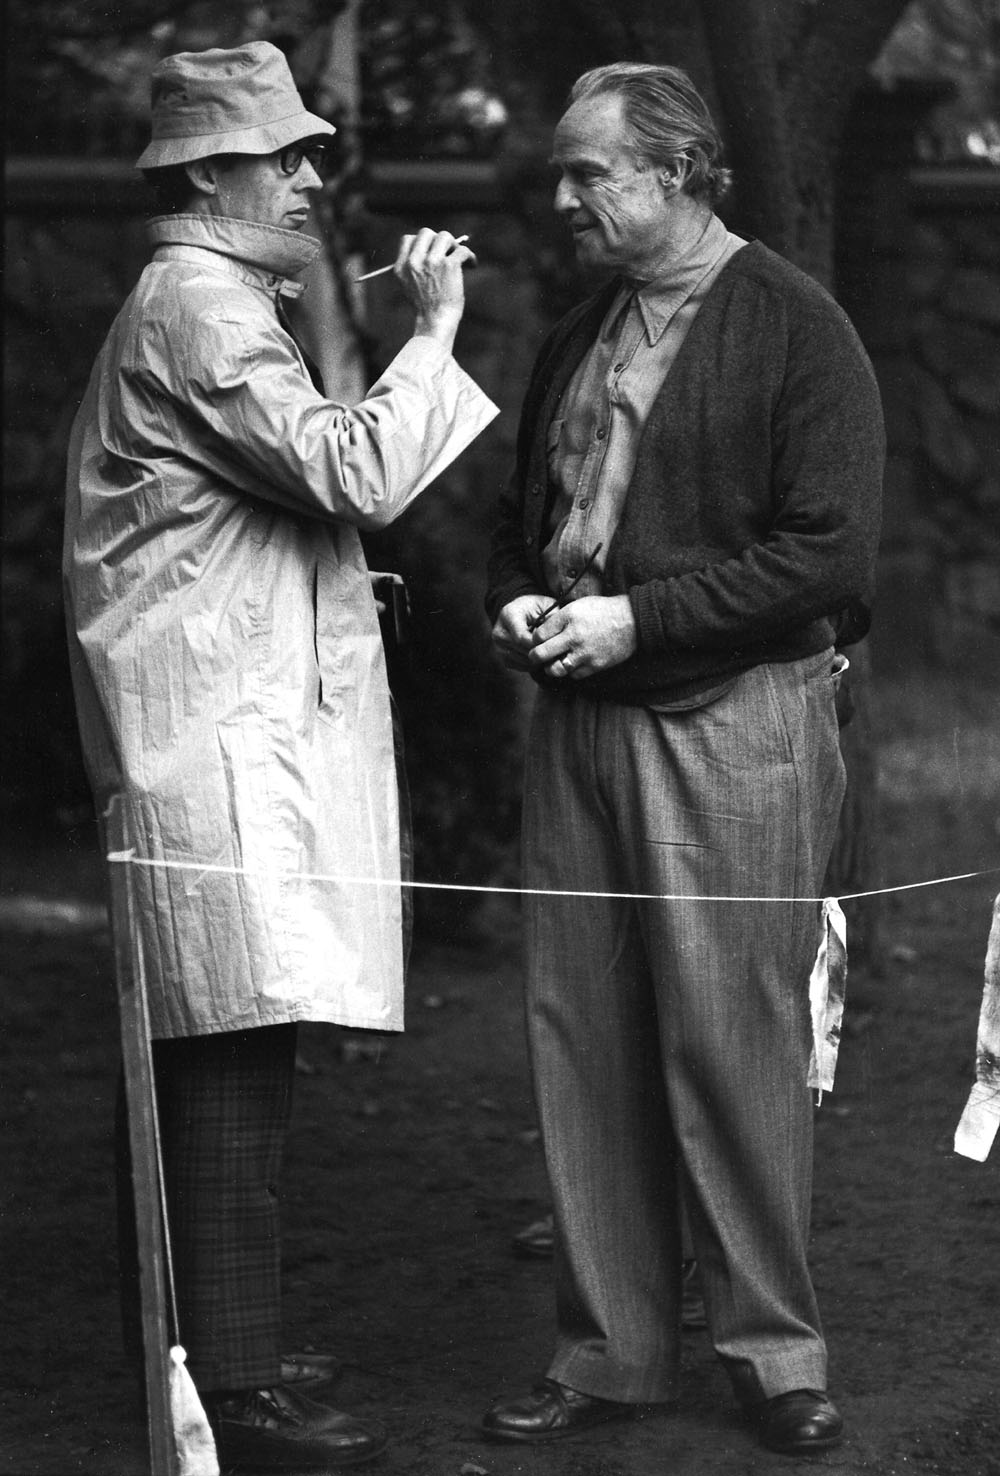 Dick Smith, Marlon Brando on The Godfather set